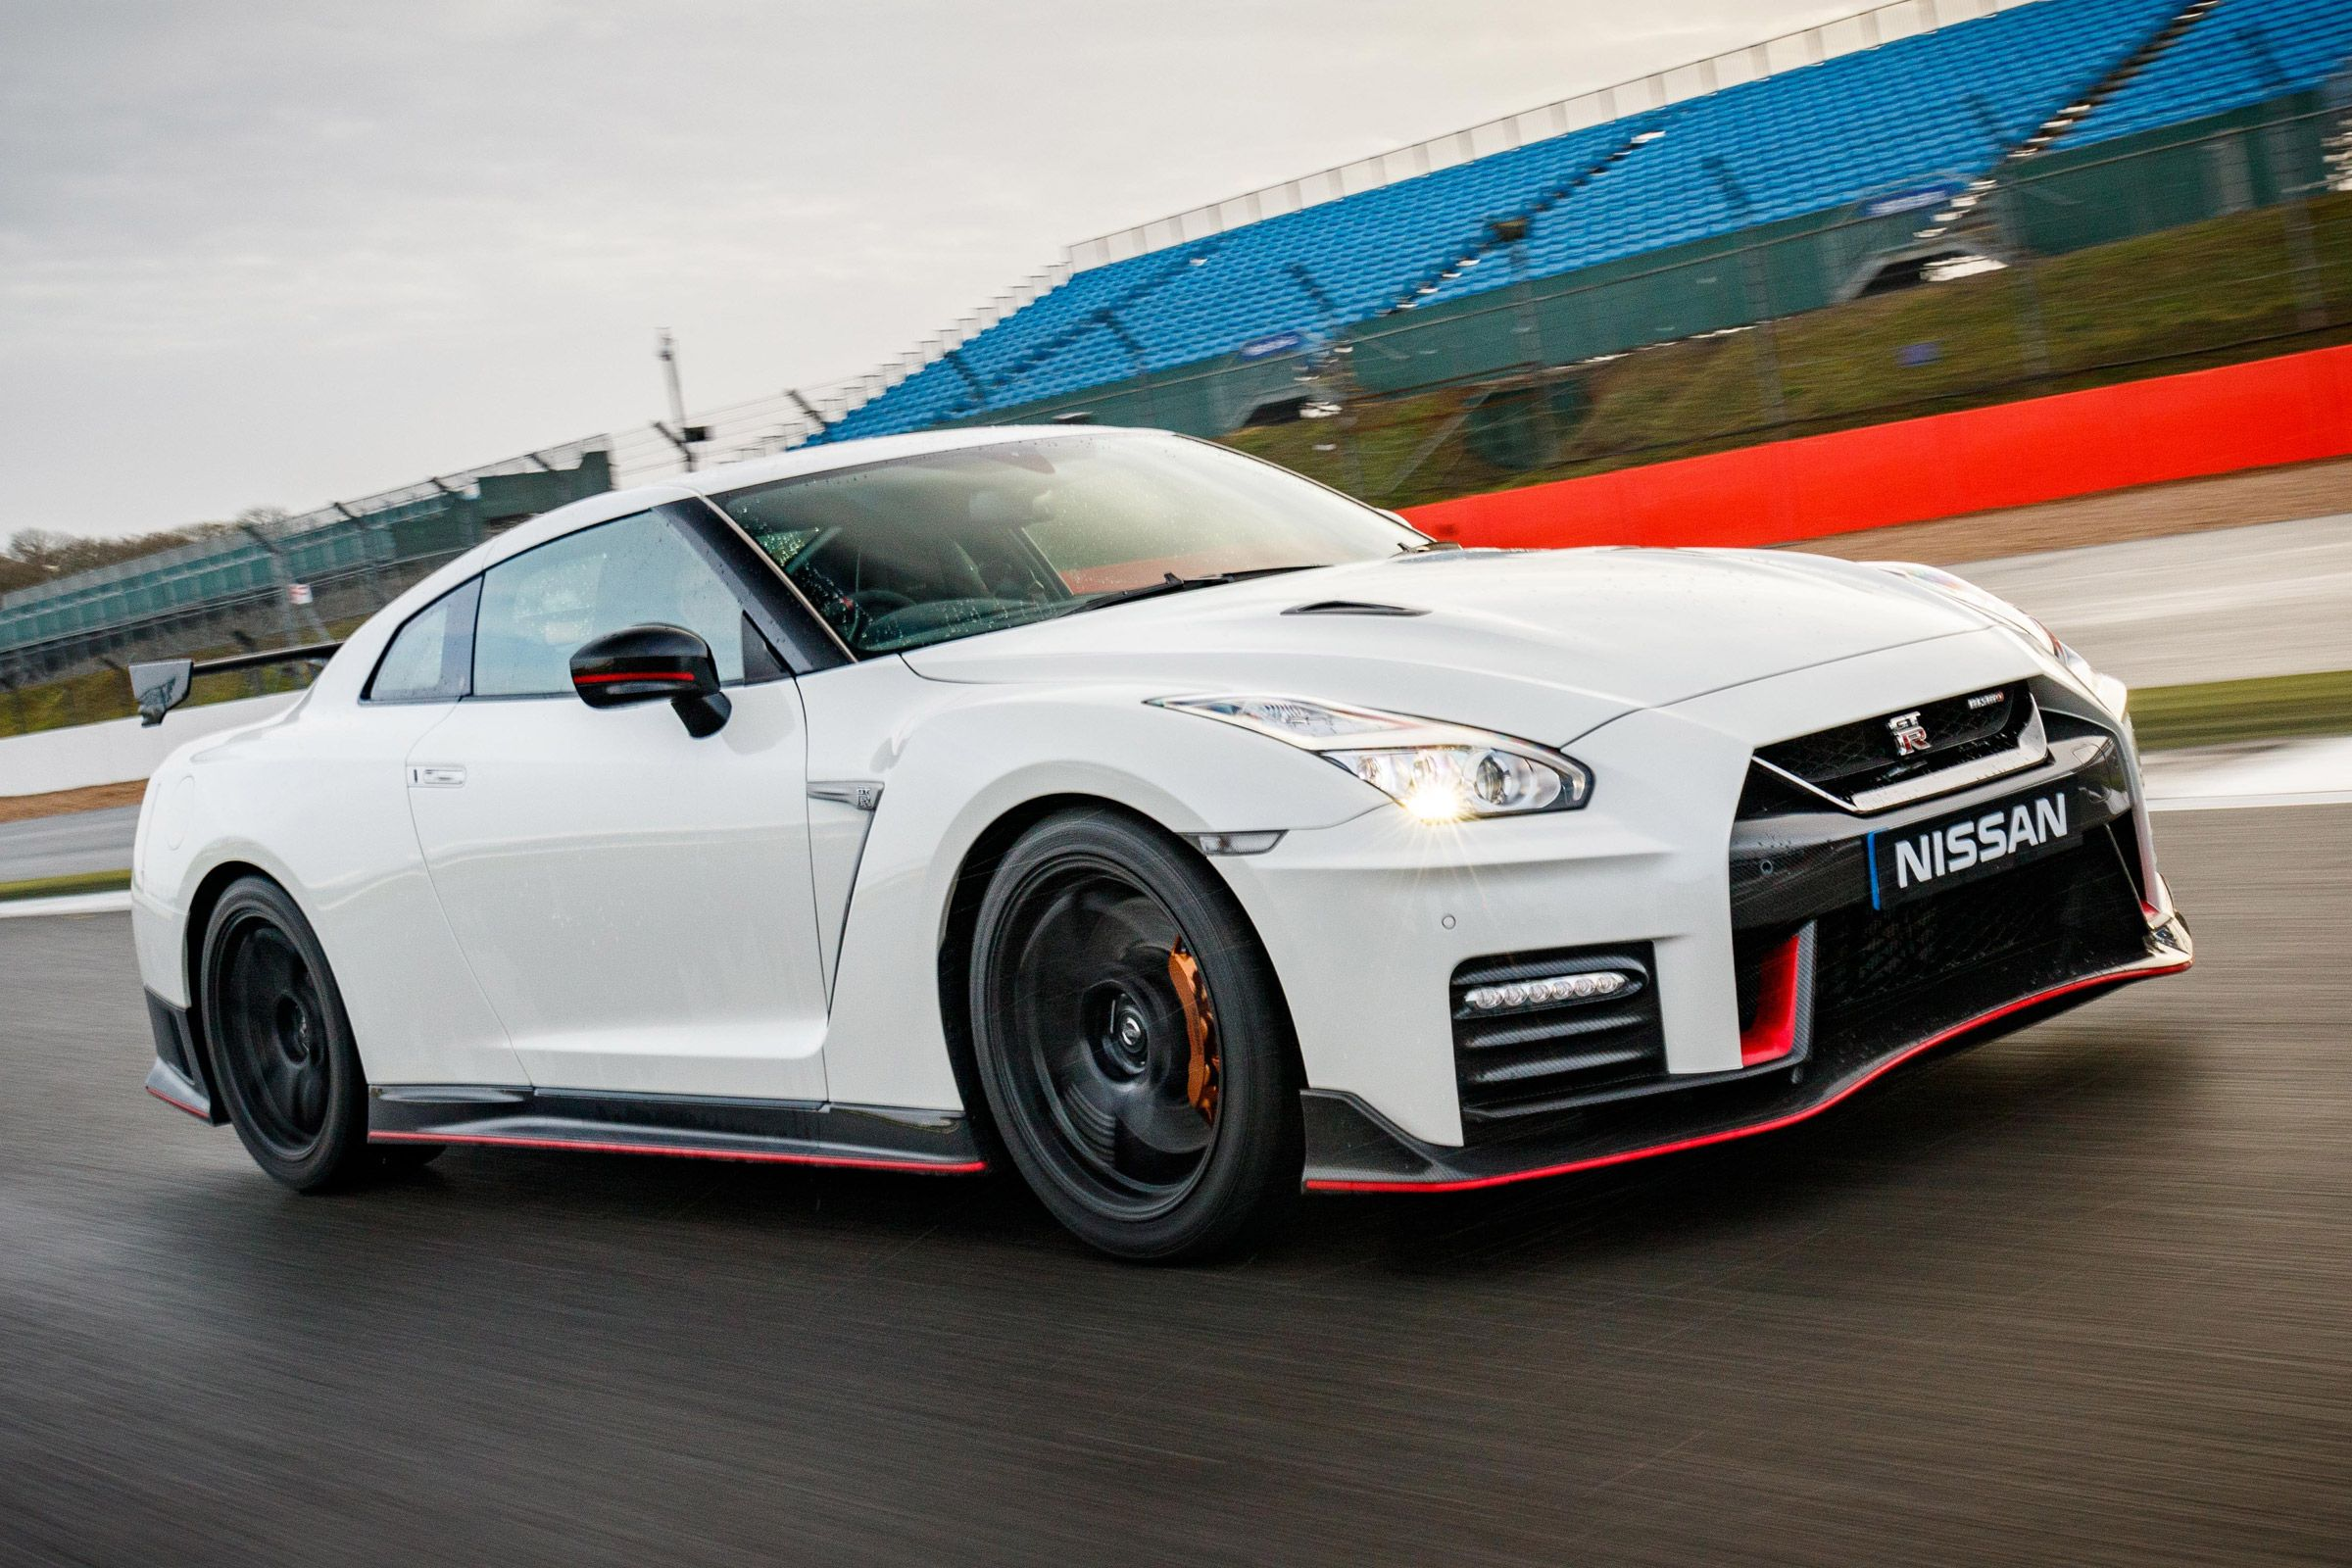 Ultraexclusive Nissan GTR NISMO brings more fire to the